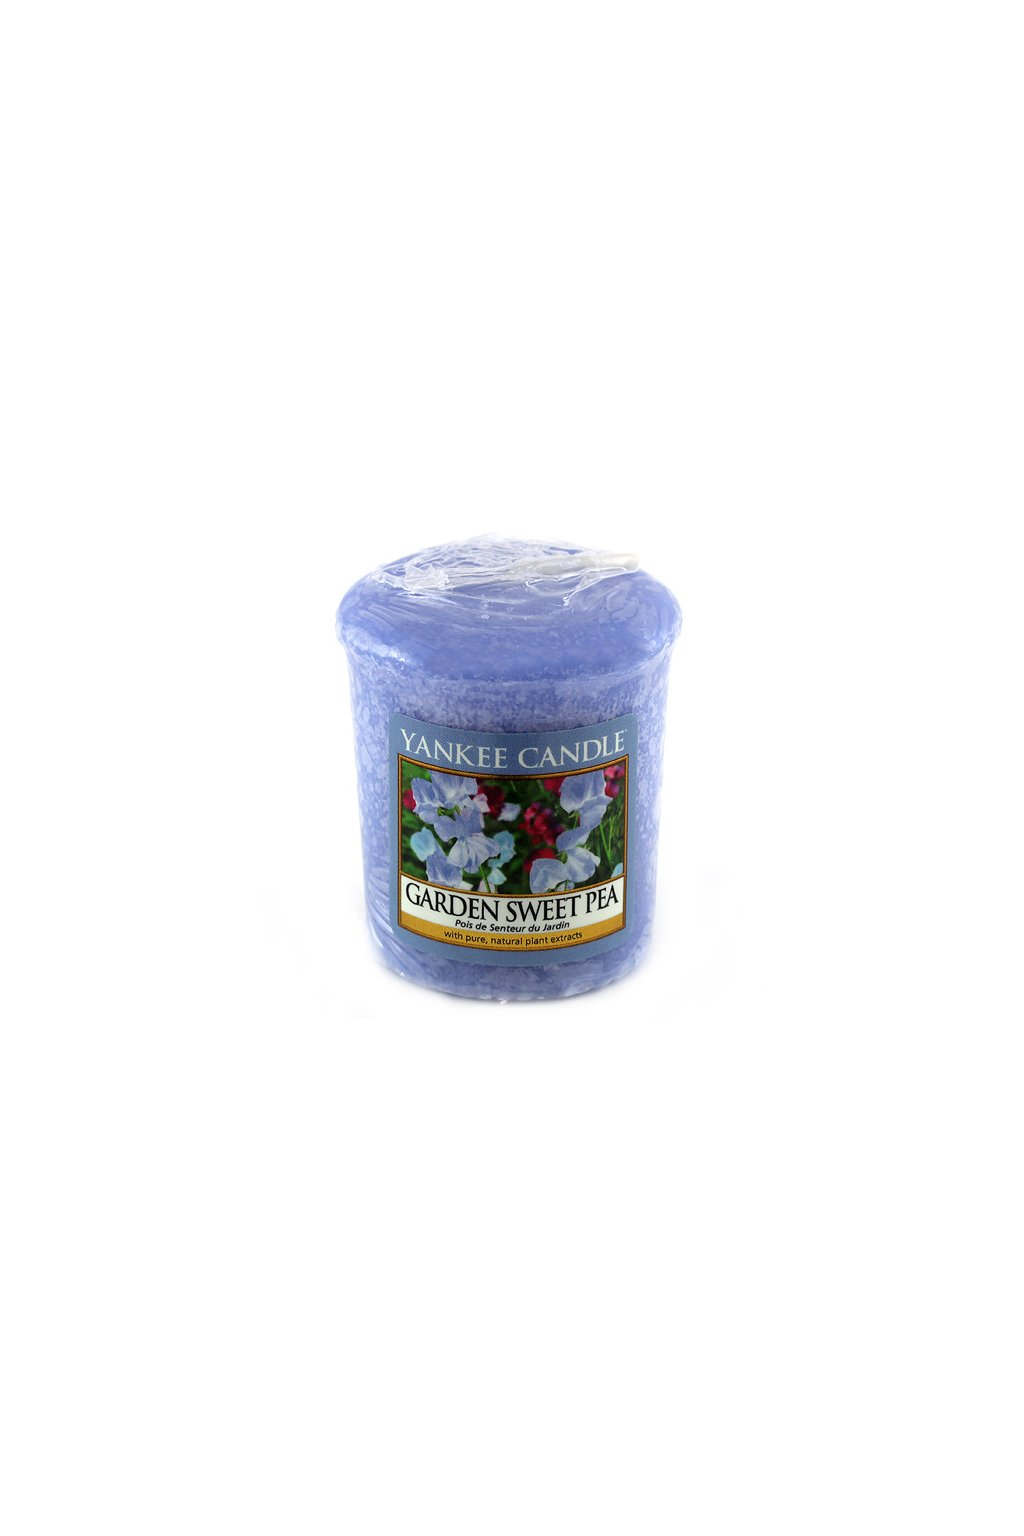 Yankee Candle Garden Sweet Pea 49g